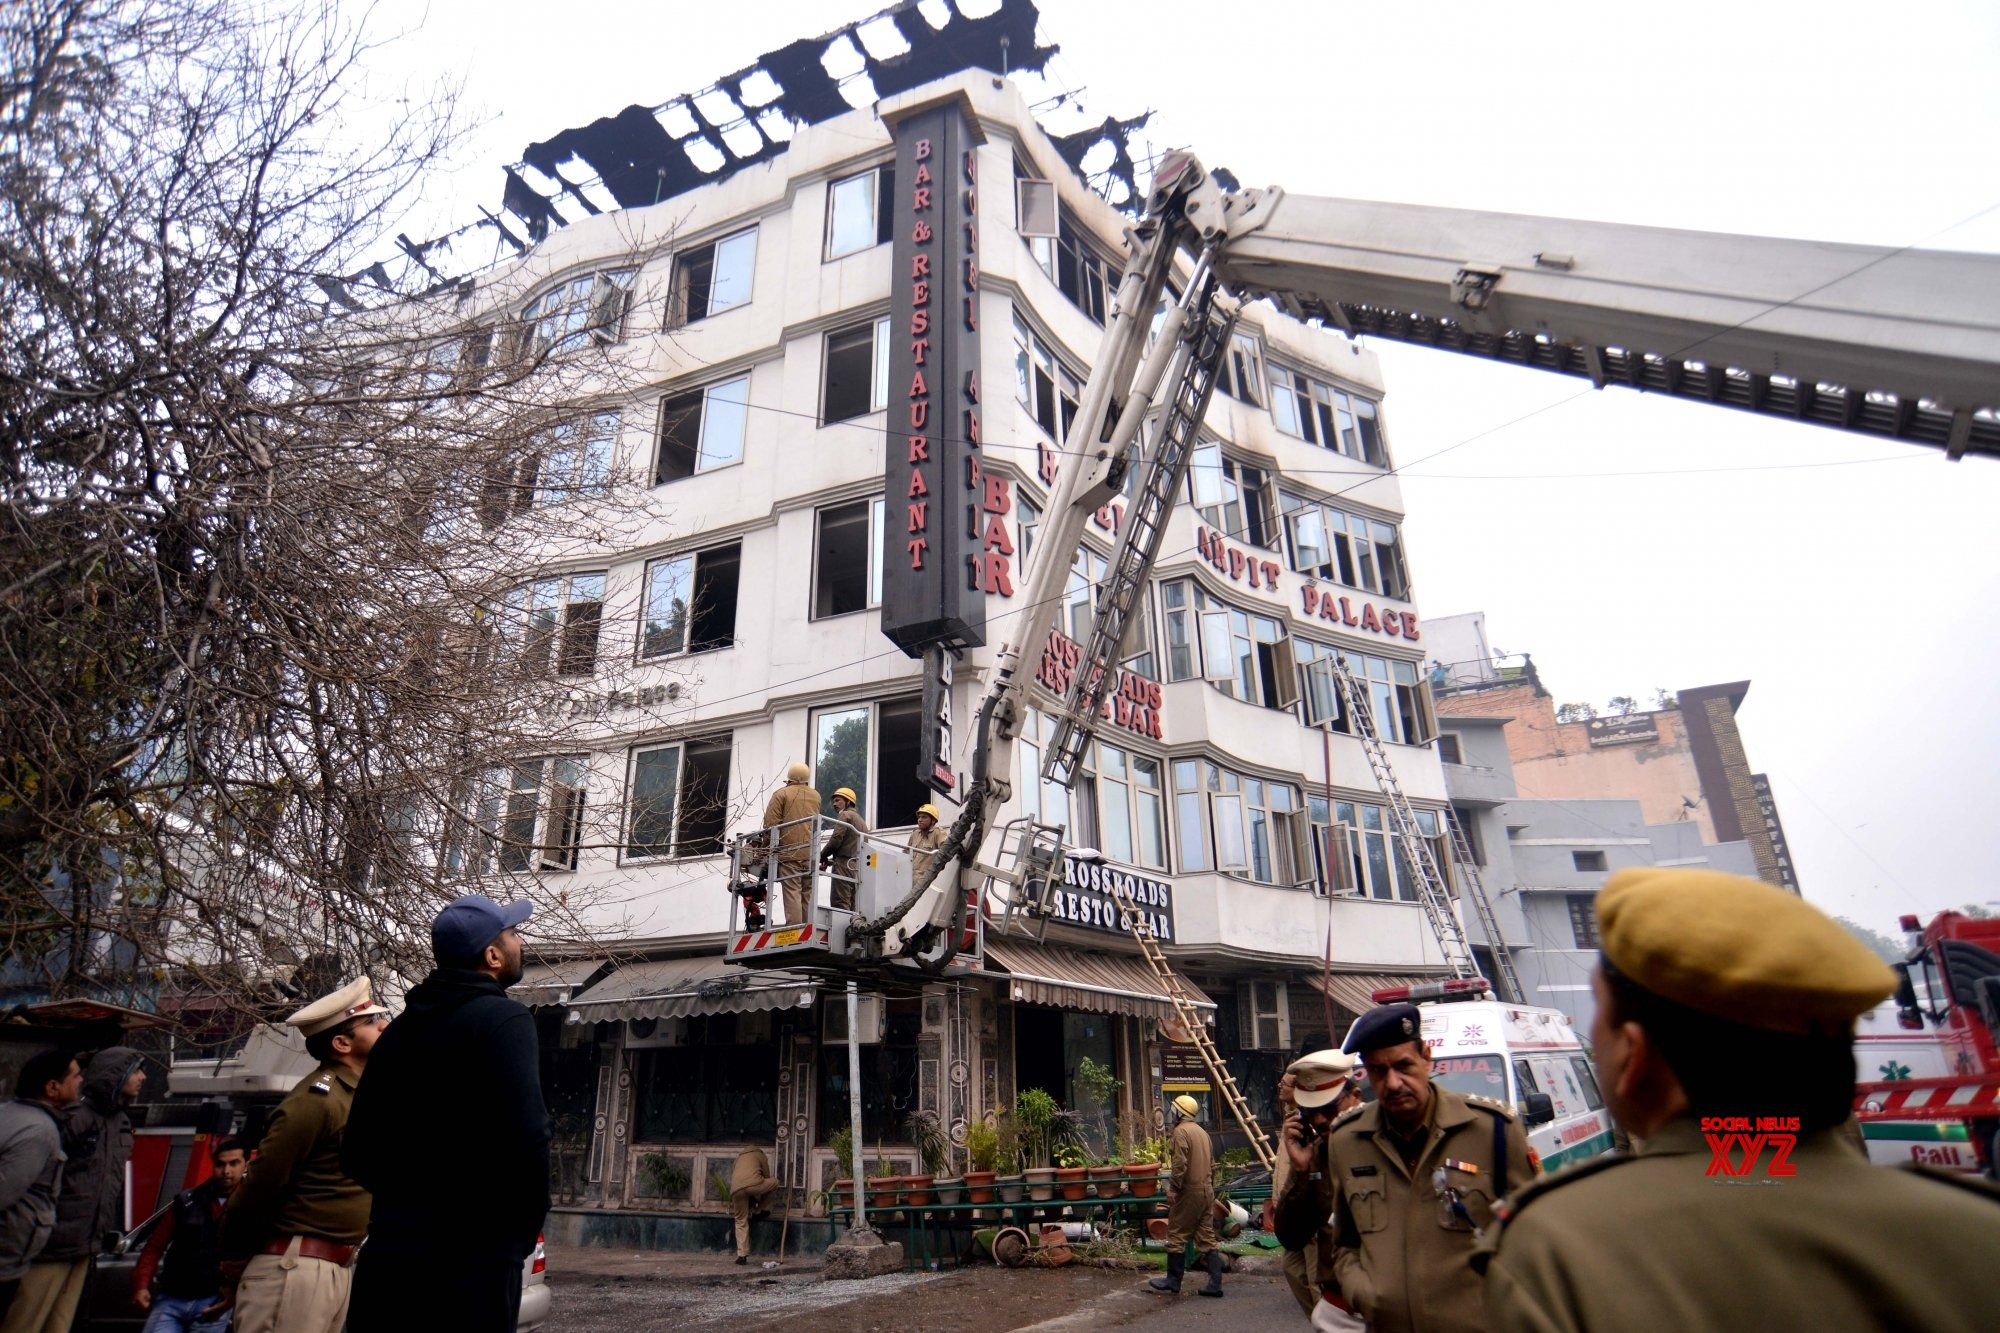 Scared tourists, worried hotel staff: A day after hotel fire tragedy